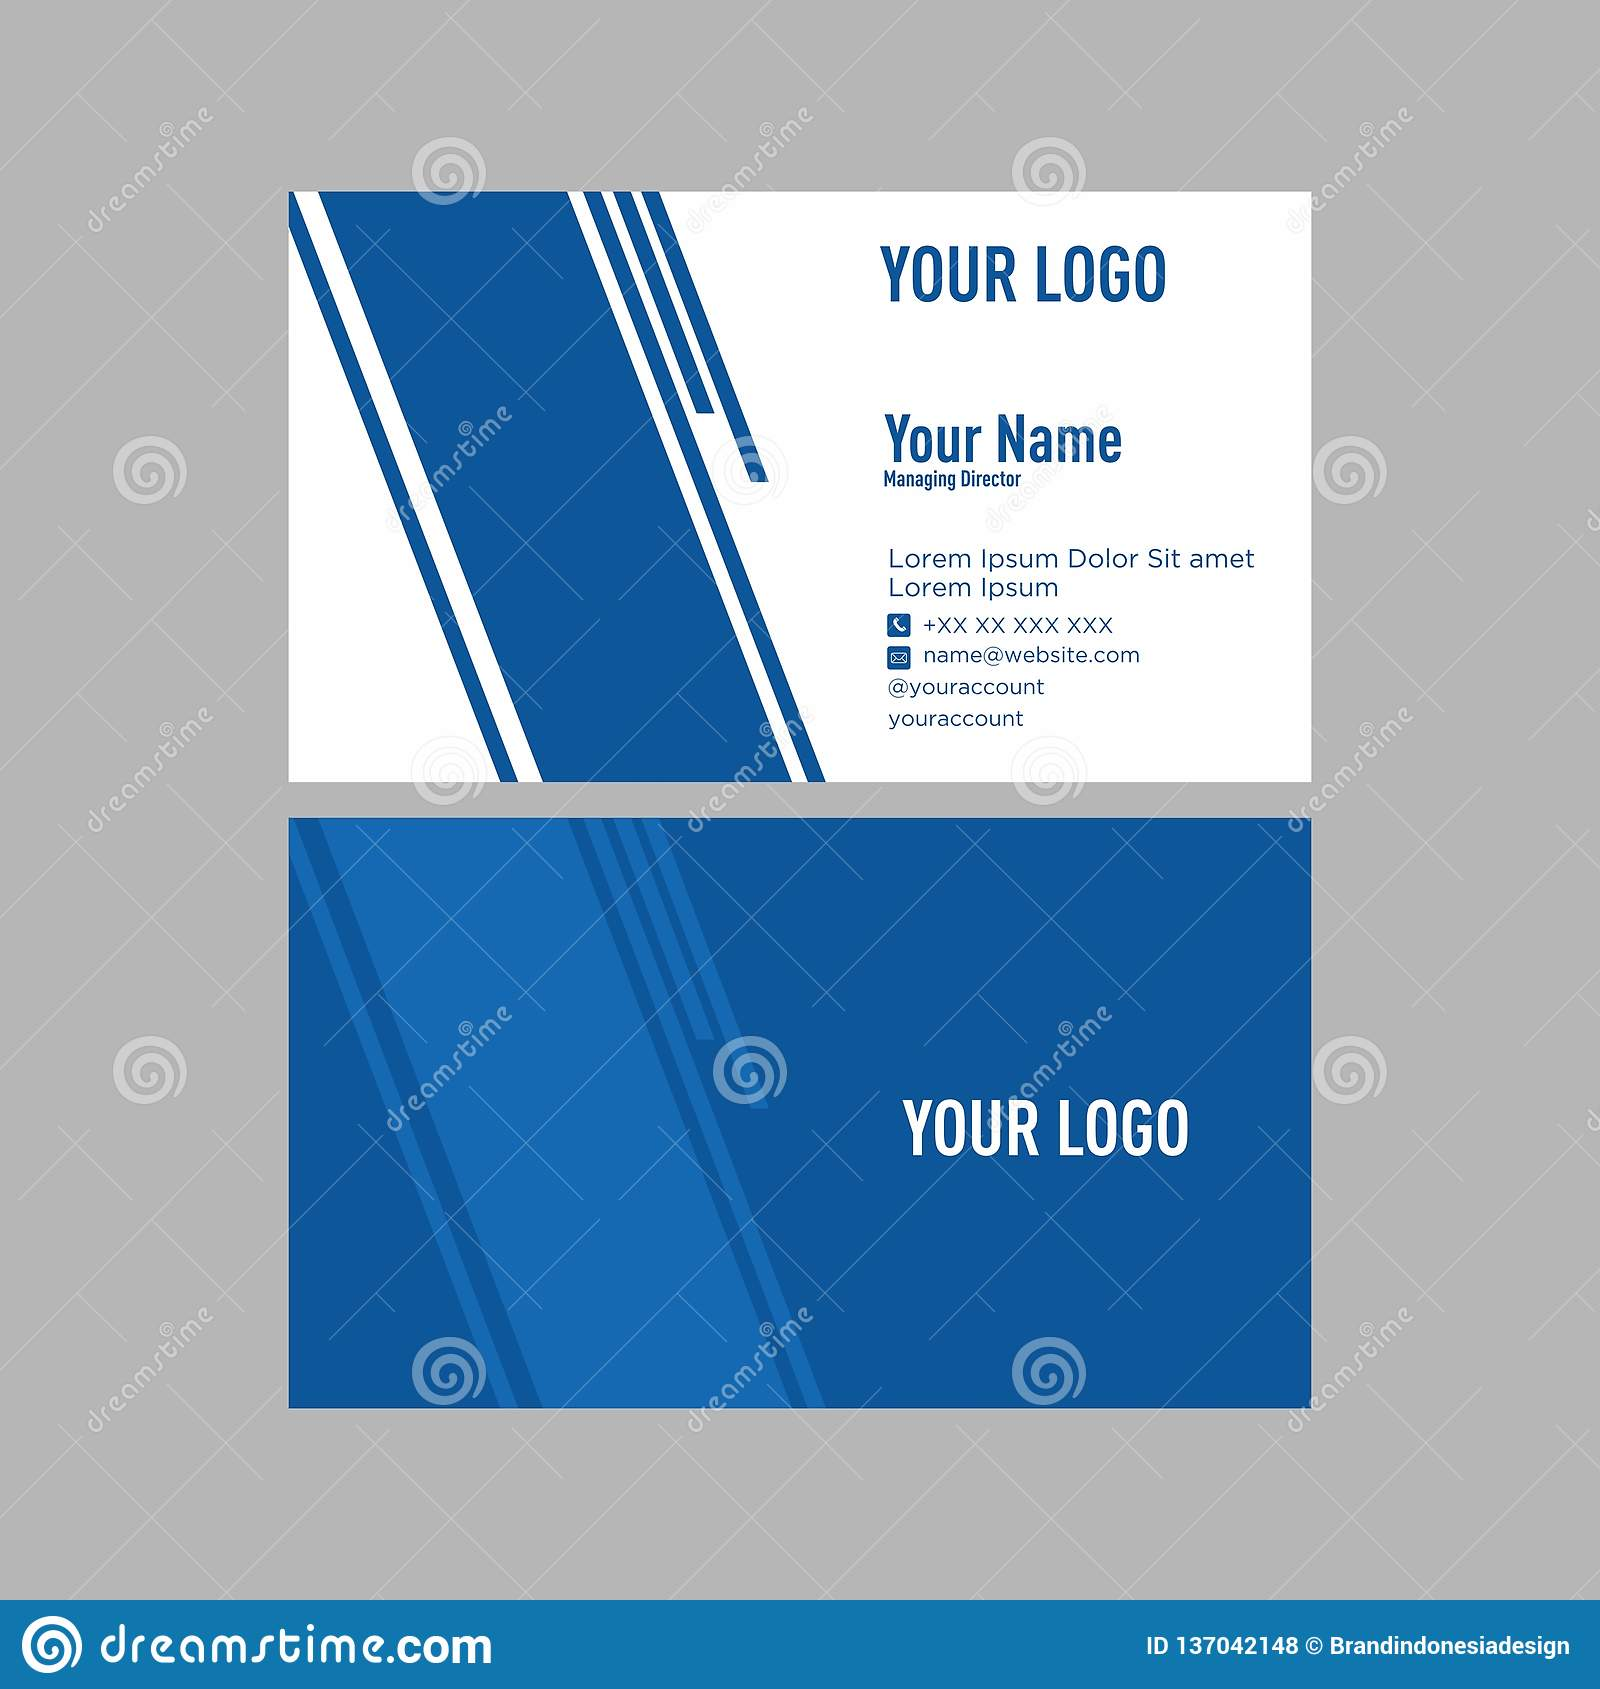 Awesome Business Card Tamplate Design For You Only Change Names Addresses Contacts Etc